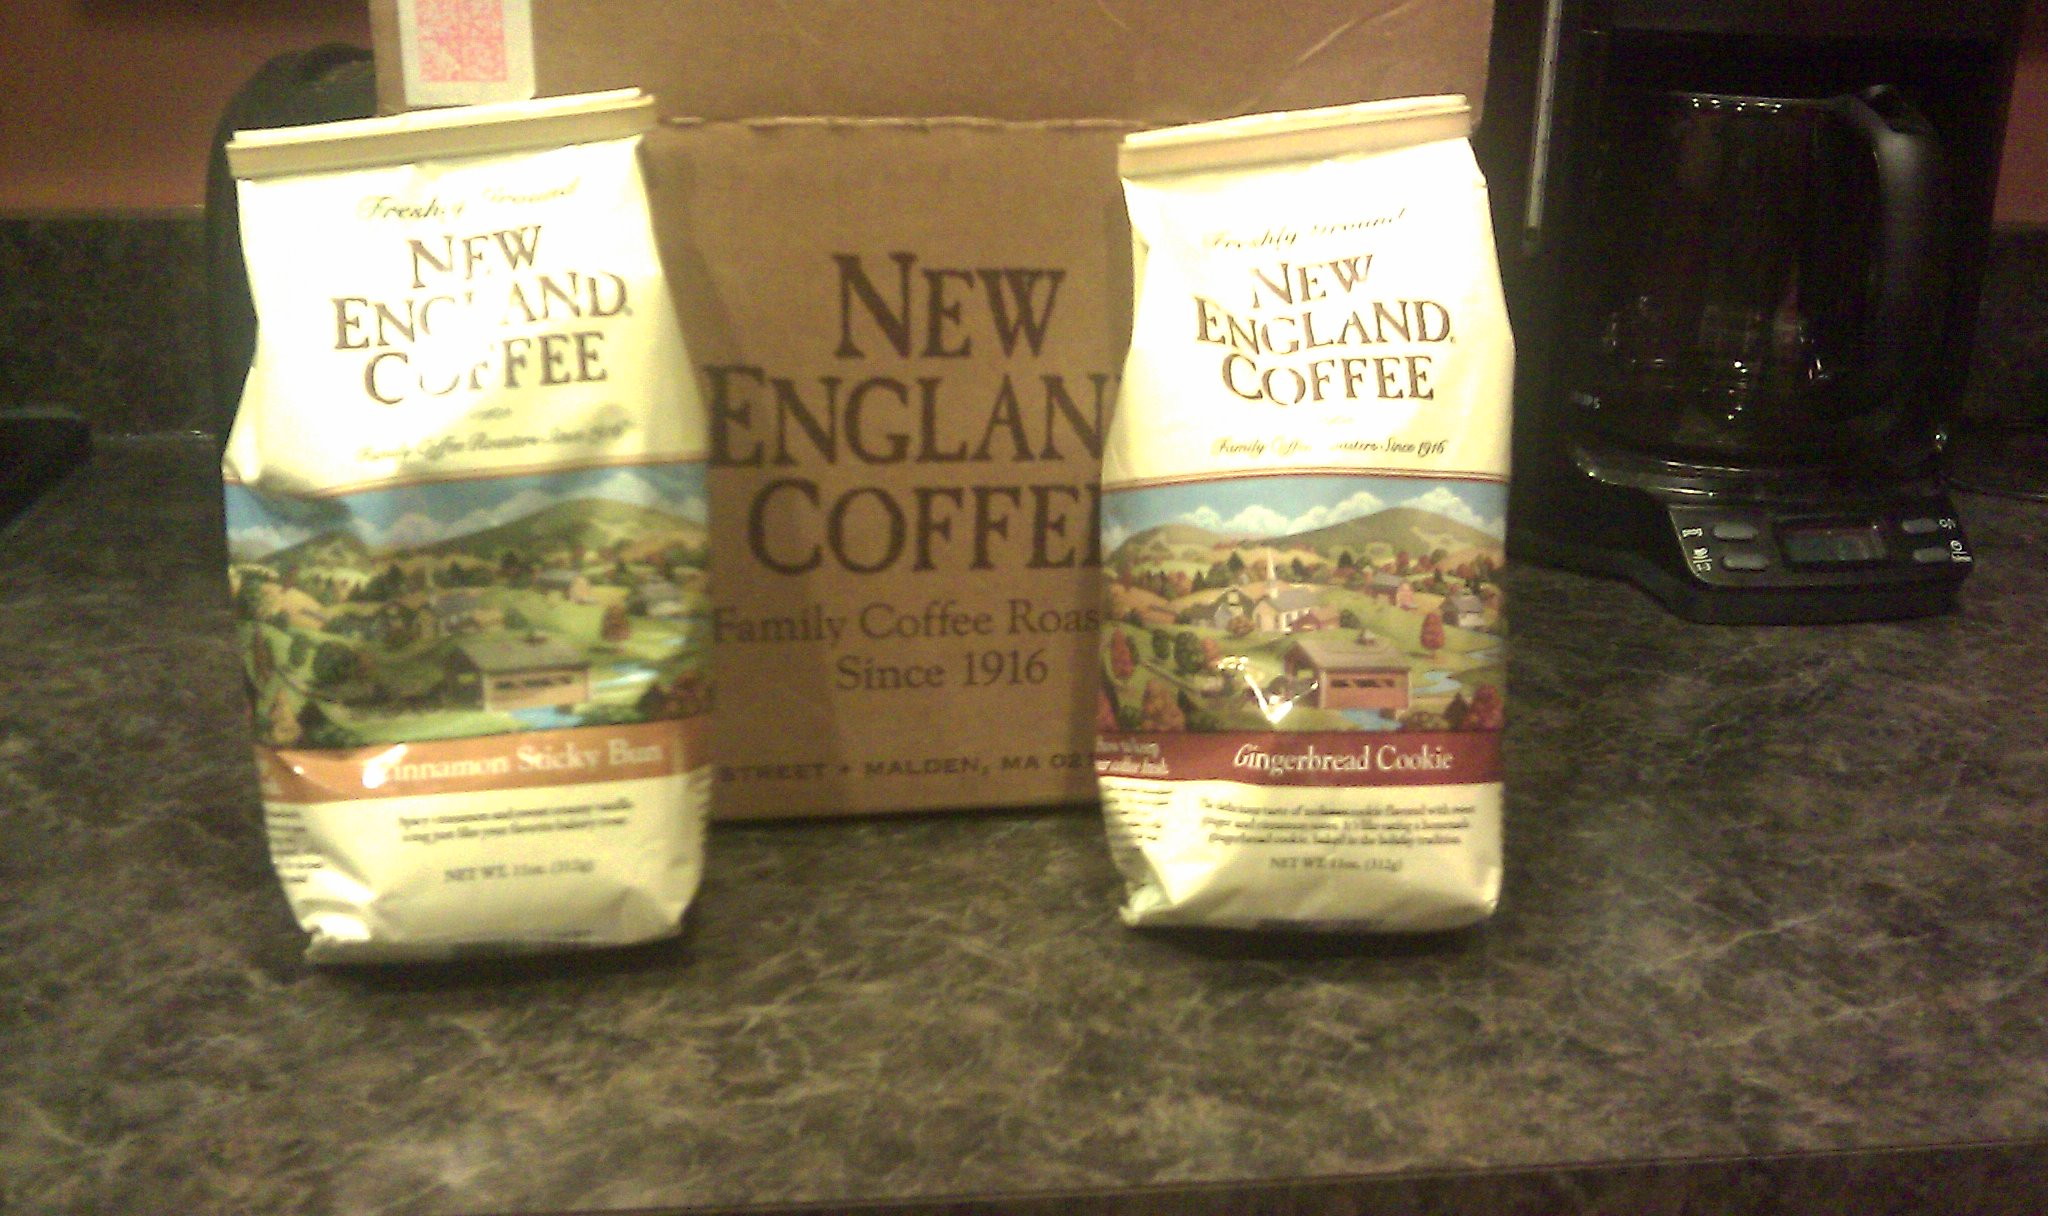 New England Coffee holiday flavors